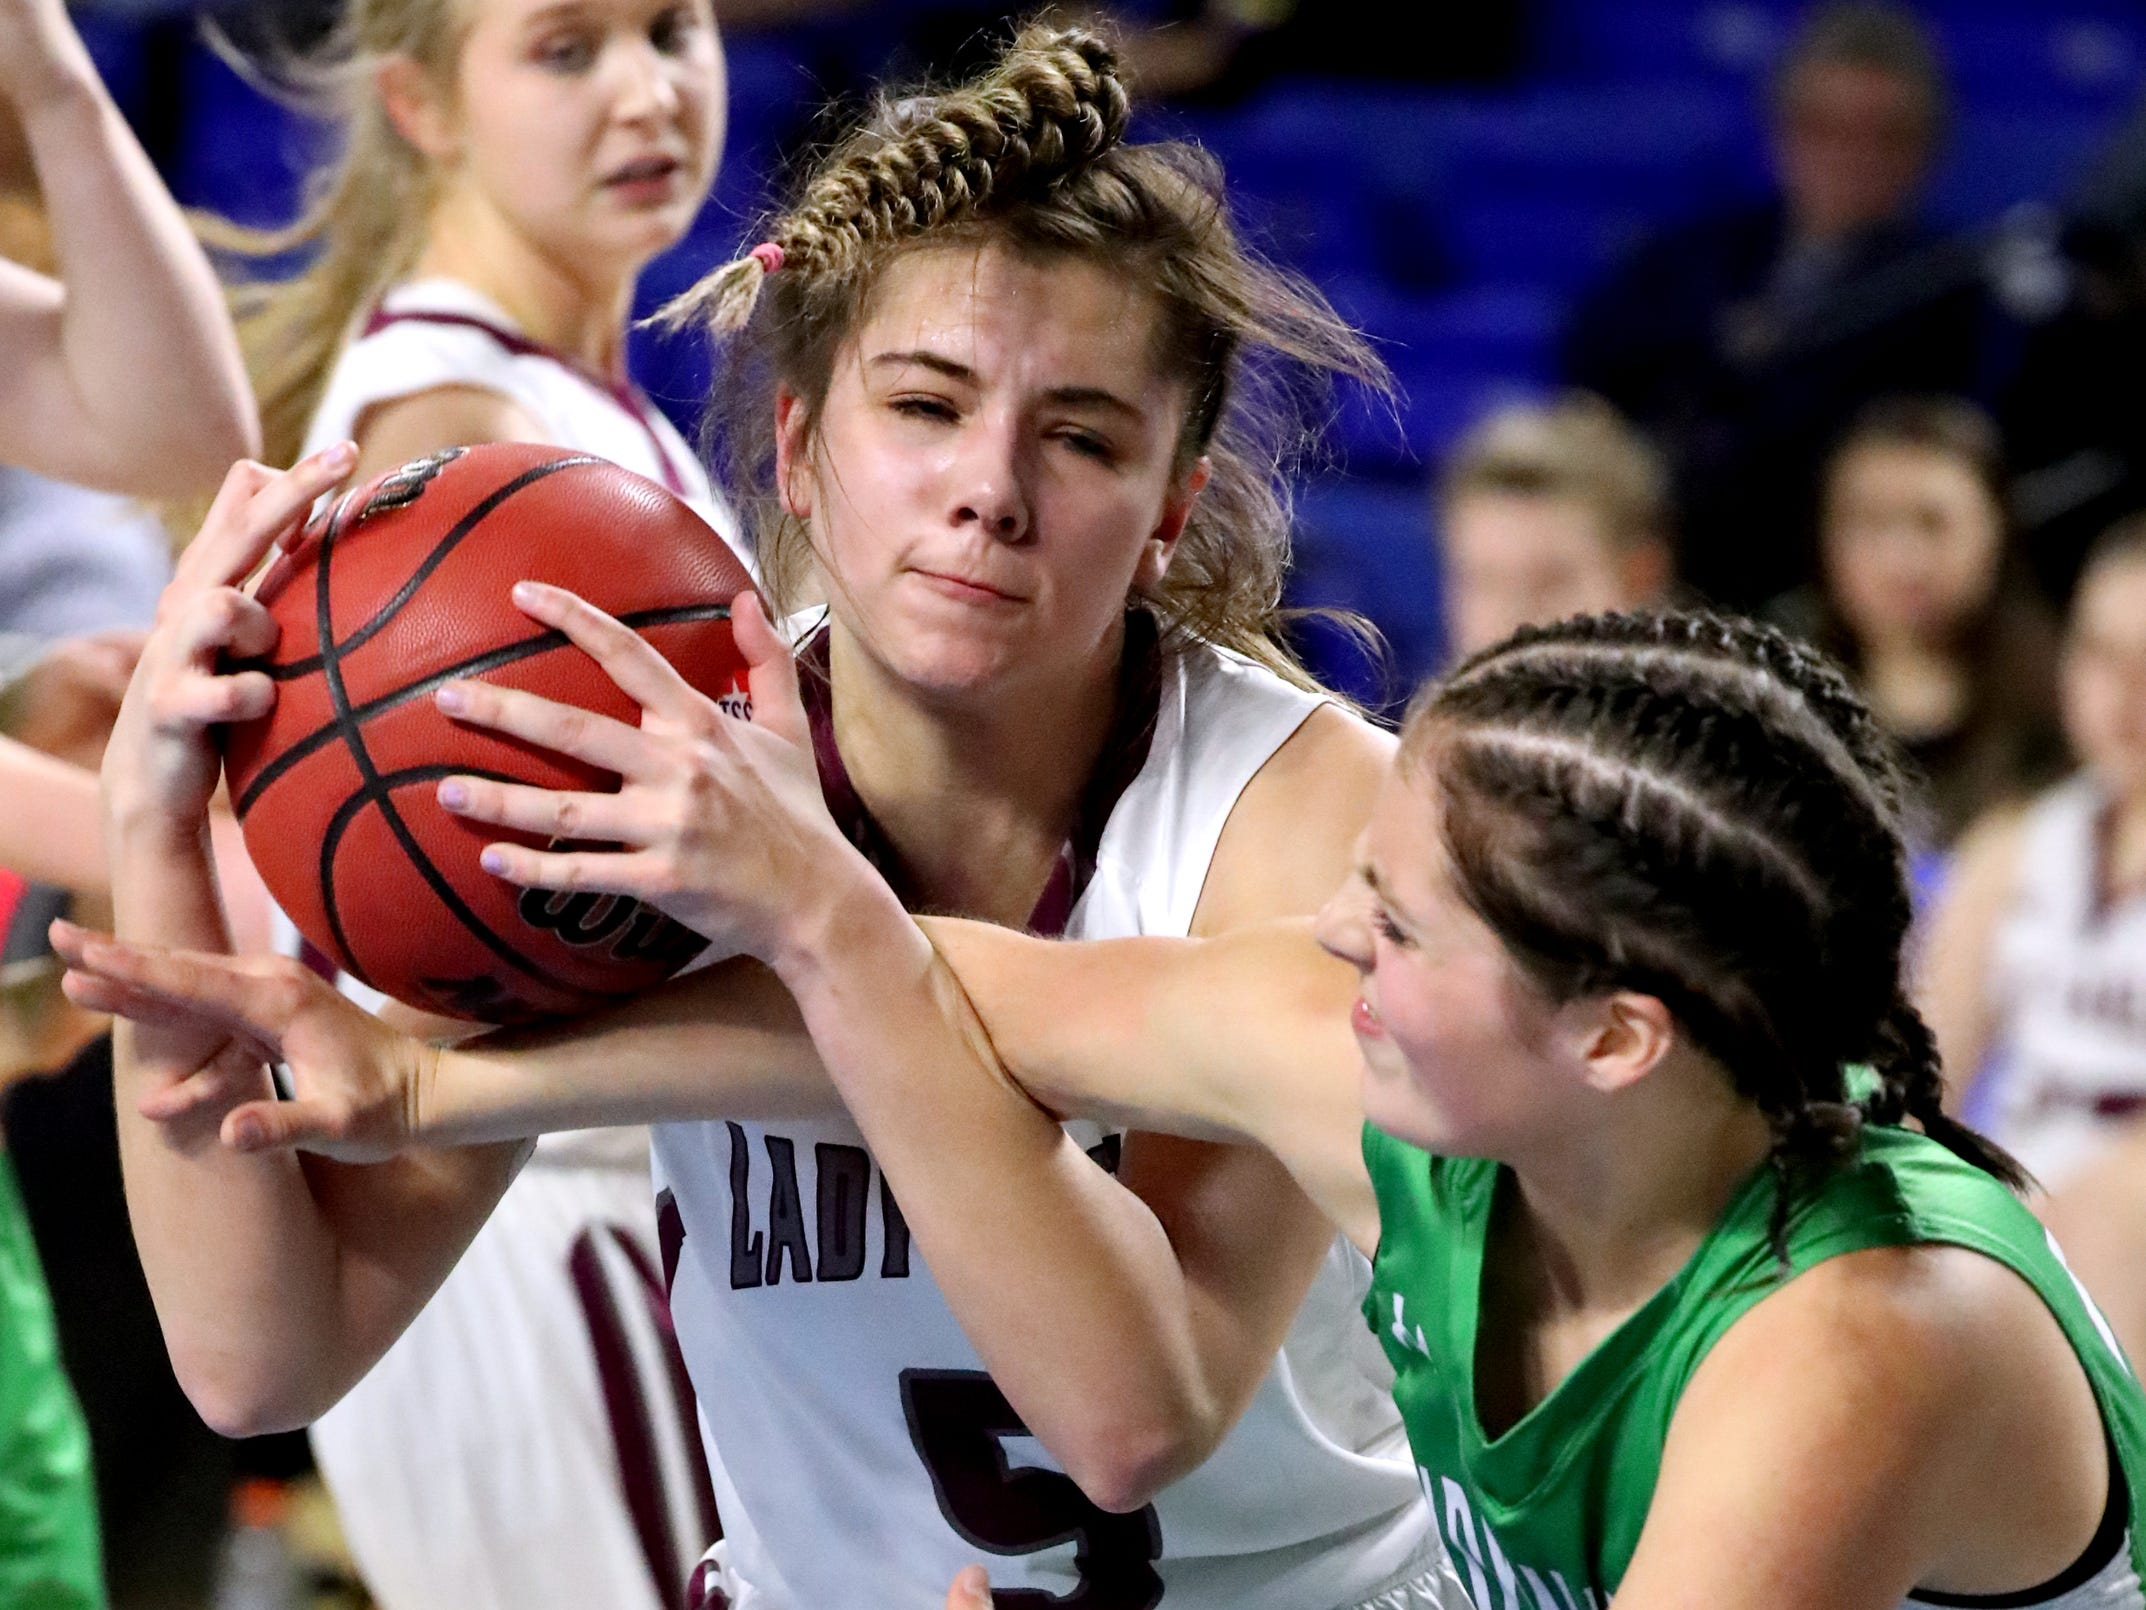 Eagleville's Elizabeth Thompson (5) and Midway's Emmy Taylor (25) both fight for position for the ball during the quarterfinal round of the TSSAA Div. 1 Class A Girls State Tournament, on Thursday, March 7, 2019, at Murphy Center in Murfreesboro, Tenn.